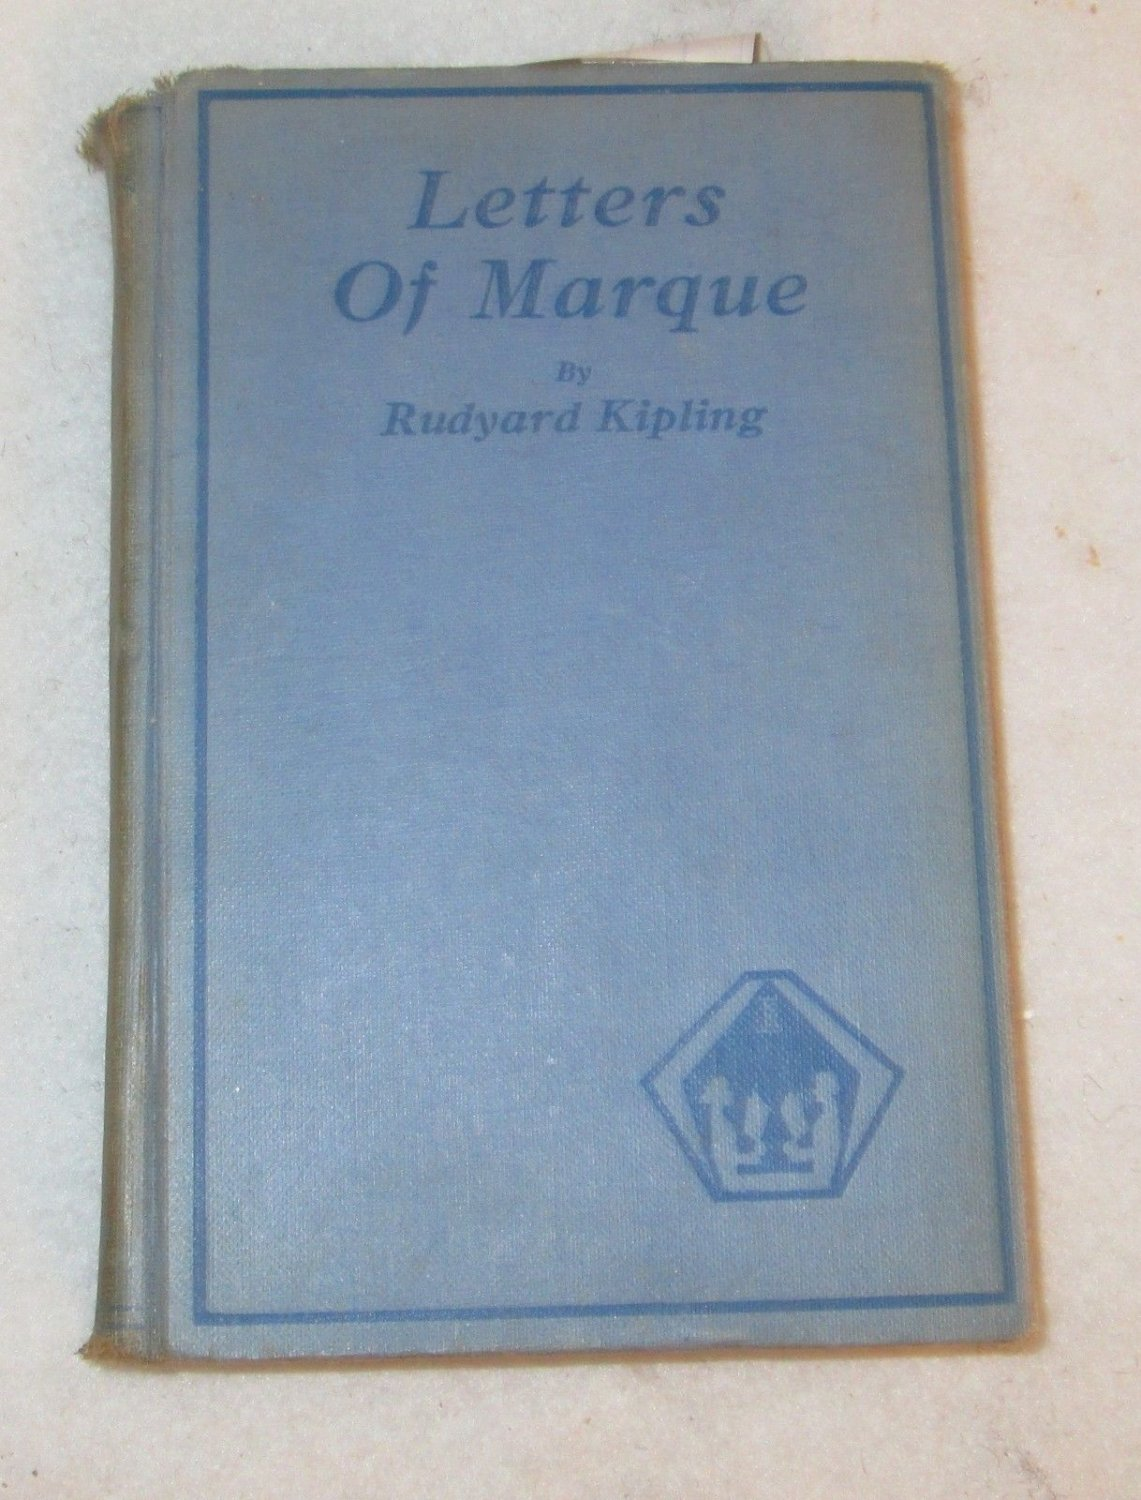 Letters of Marque Rudyard Kipling Published by R.F. Fenno New York (1899)